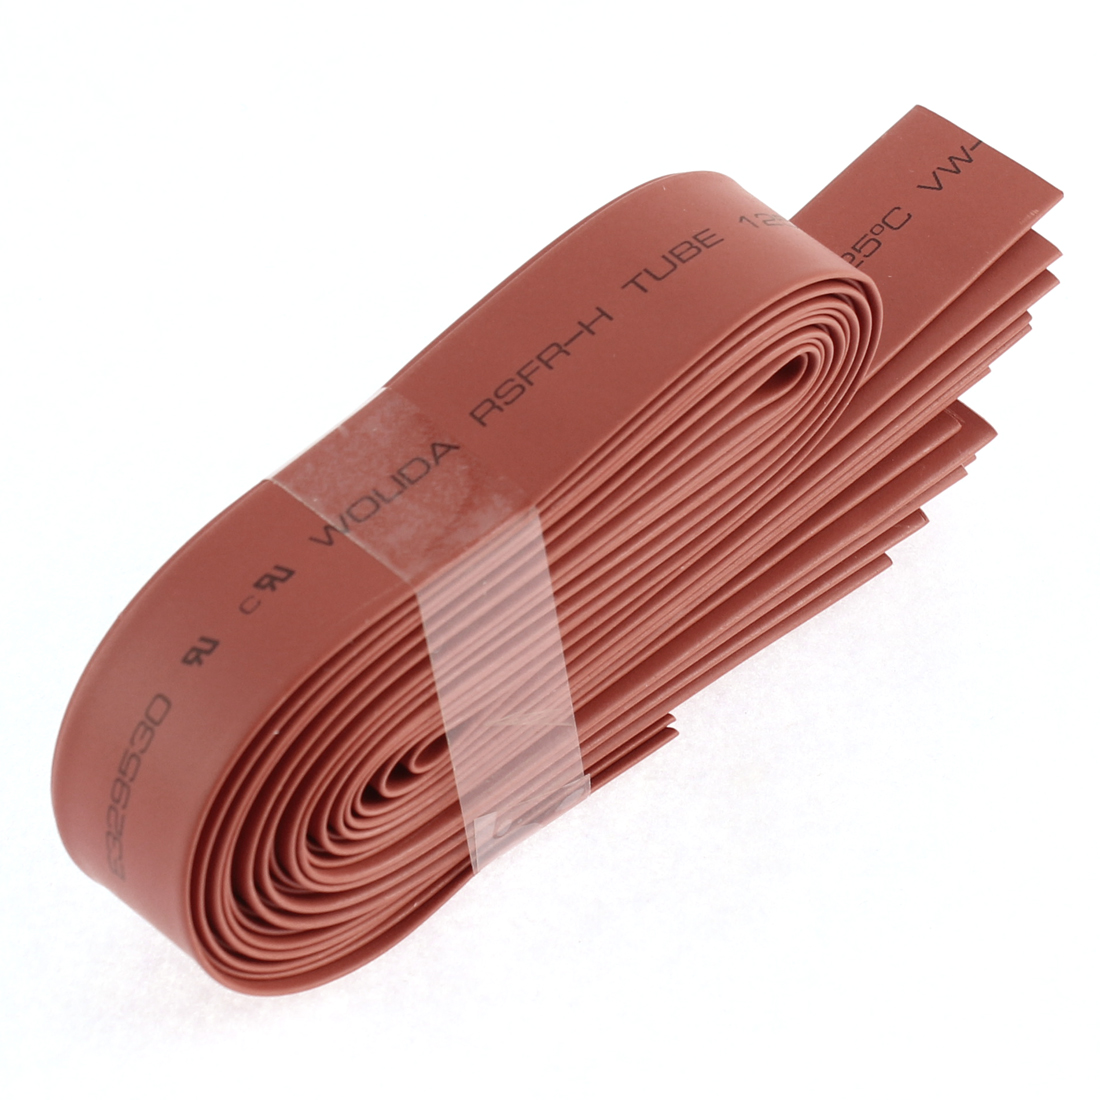 Unique Bargains Polyolefin Heat Shrink Tubing Cable Sleeve Red 35cm 1Ft 12mm Dia 13Pcs